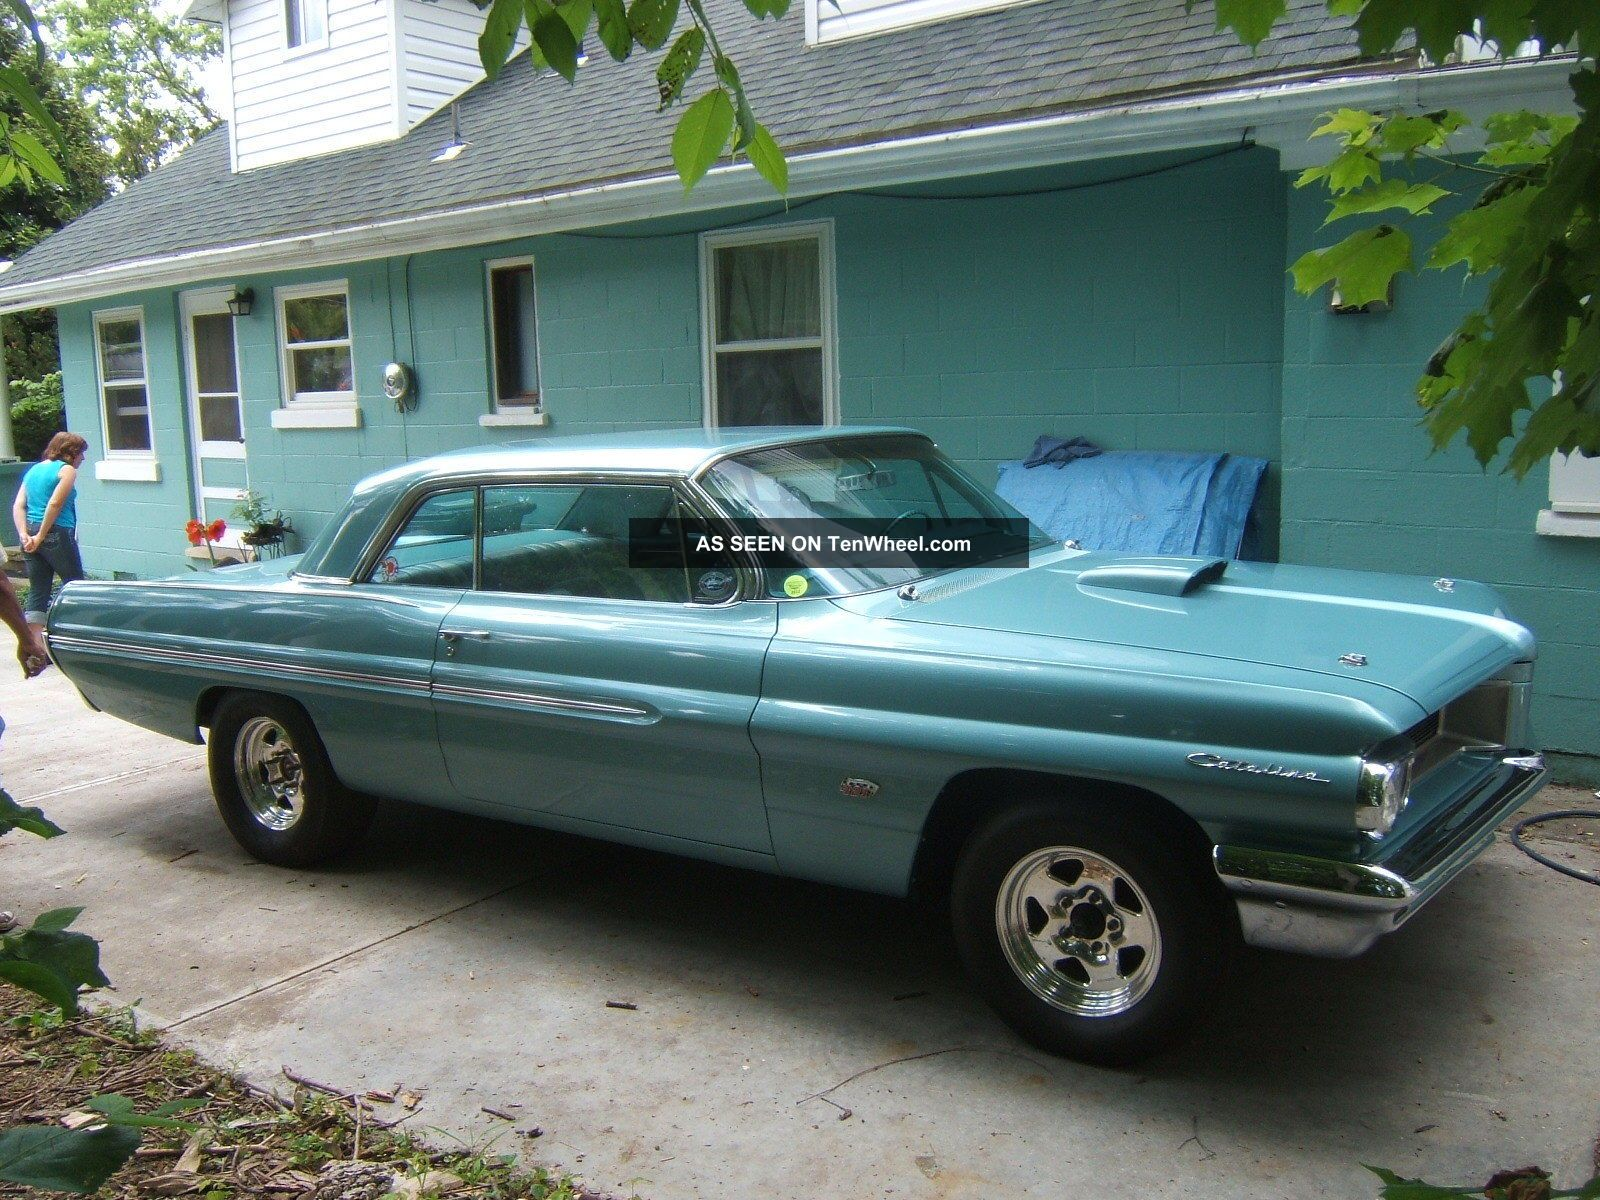 36279 1962 pontiac catalina 421  nascar block  delete options  duty likewise Oldsmobile 442 likewise 30683 1950 ford shoebox   tradtional kustom and turn key car also 1972 Oldsmobile 442 W30 Blue Lf 1024x768 01 further Cutlass S High 20Point. on oldsmobile nascar for sale